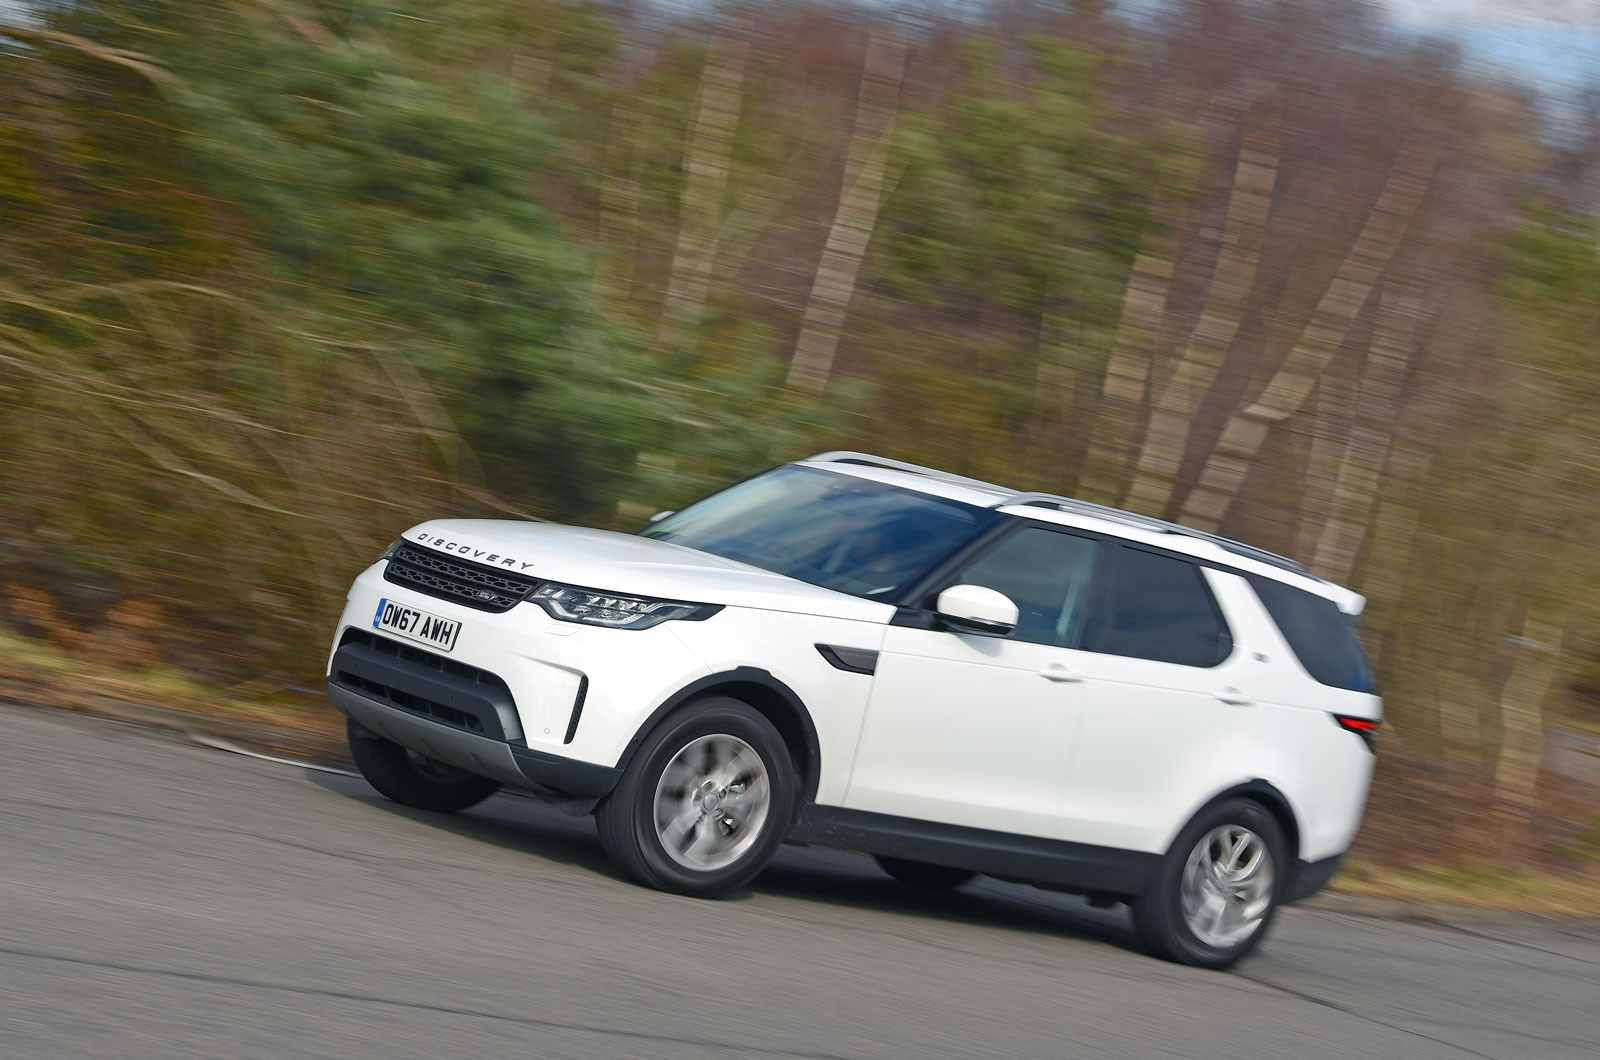 landrover cars for sale rover leahey used land motor se series discovery group tony